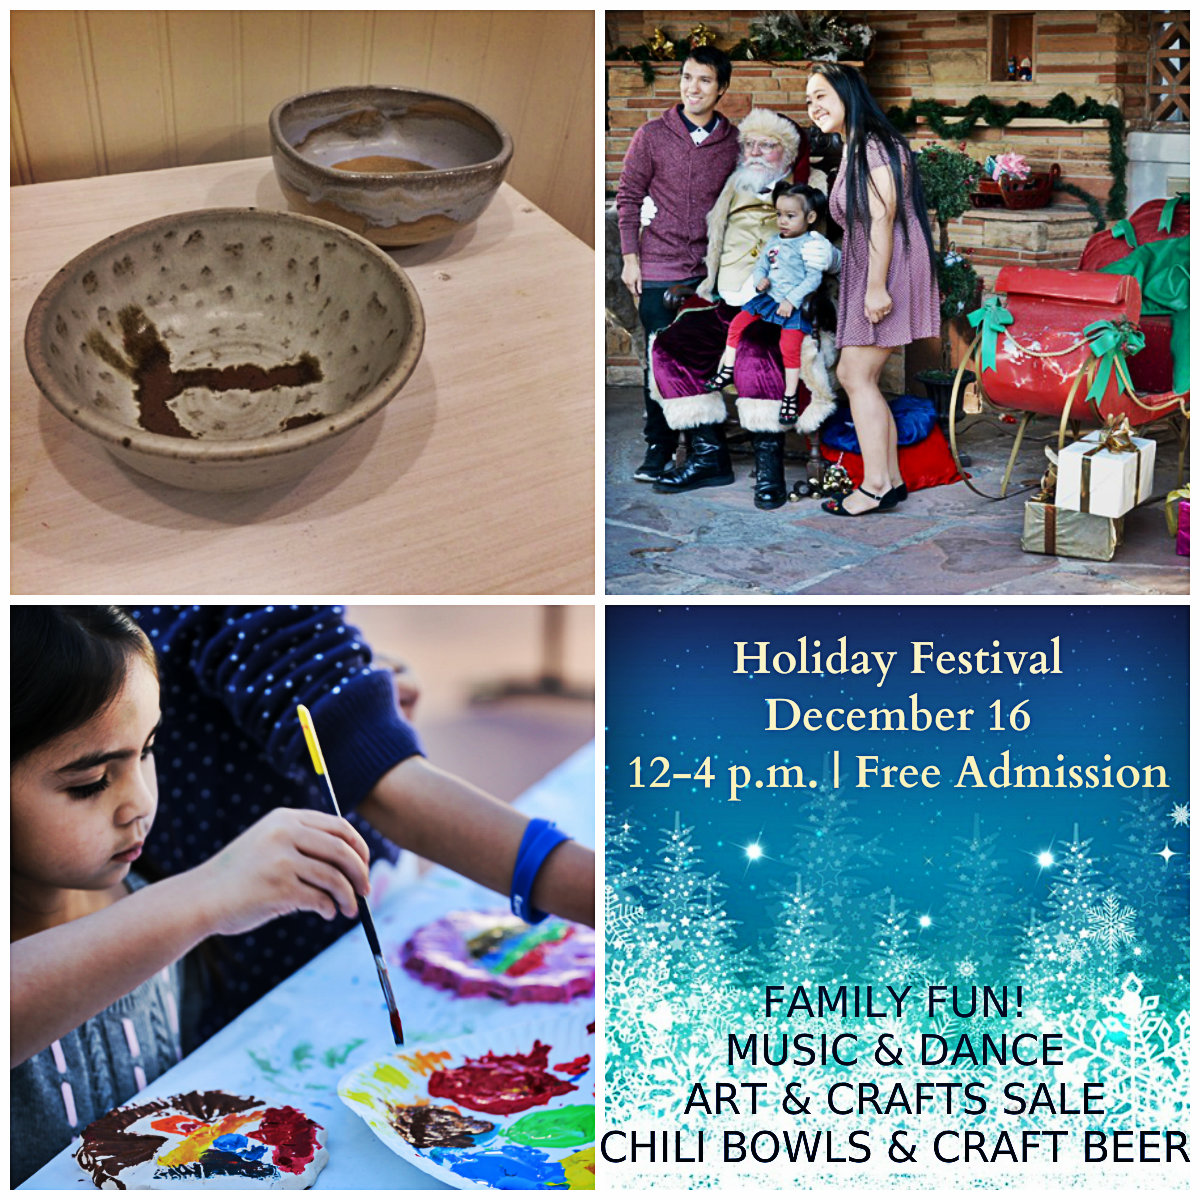 Holiday Fest 2018collage.jpg